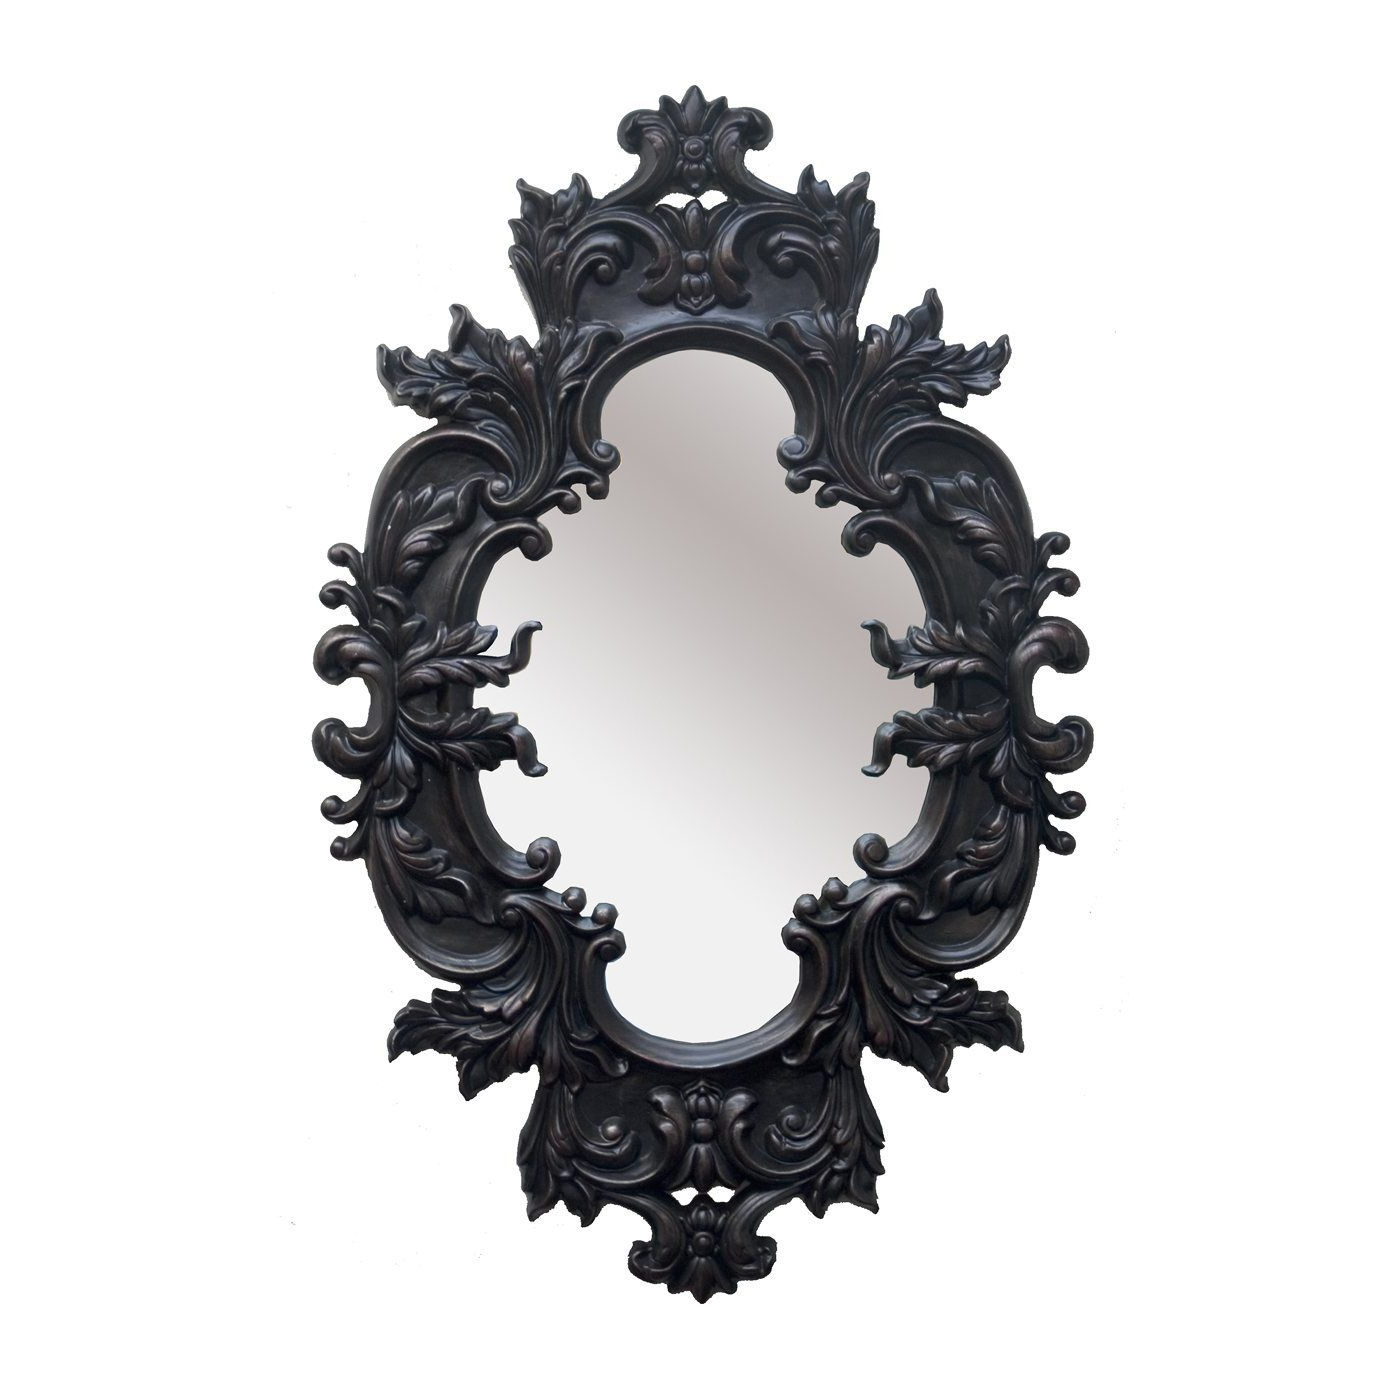 2020 Prodigious Useful Tips: Decorative Wall Mirror Rustic Black Wall For Decorative Black Wall Mirrors (View 2 of 20)